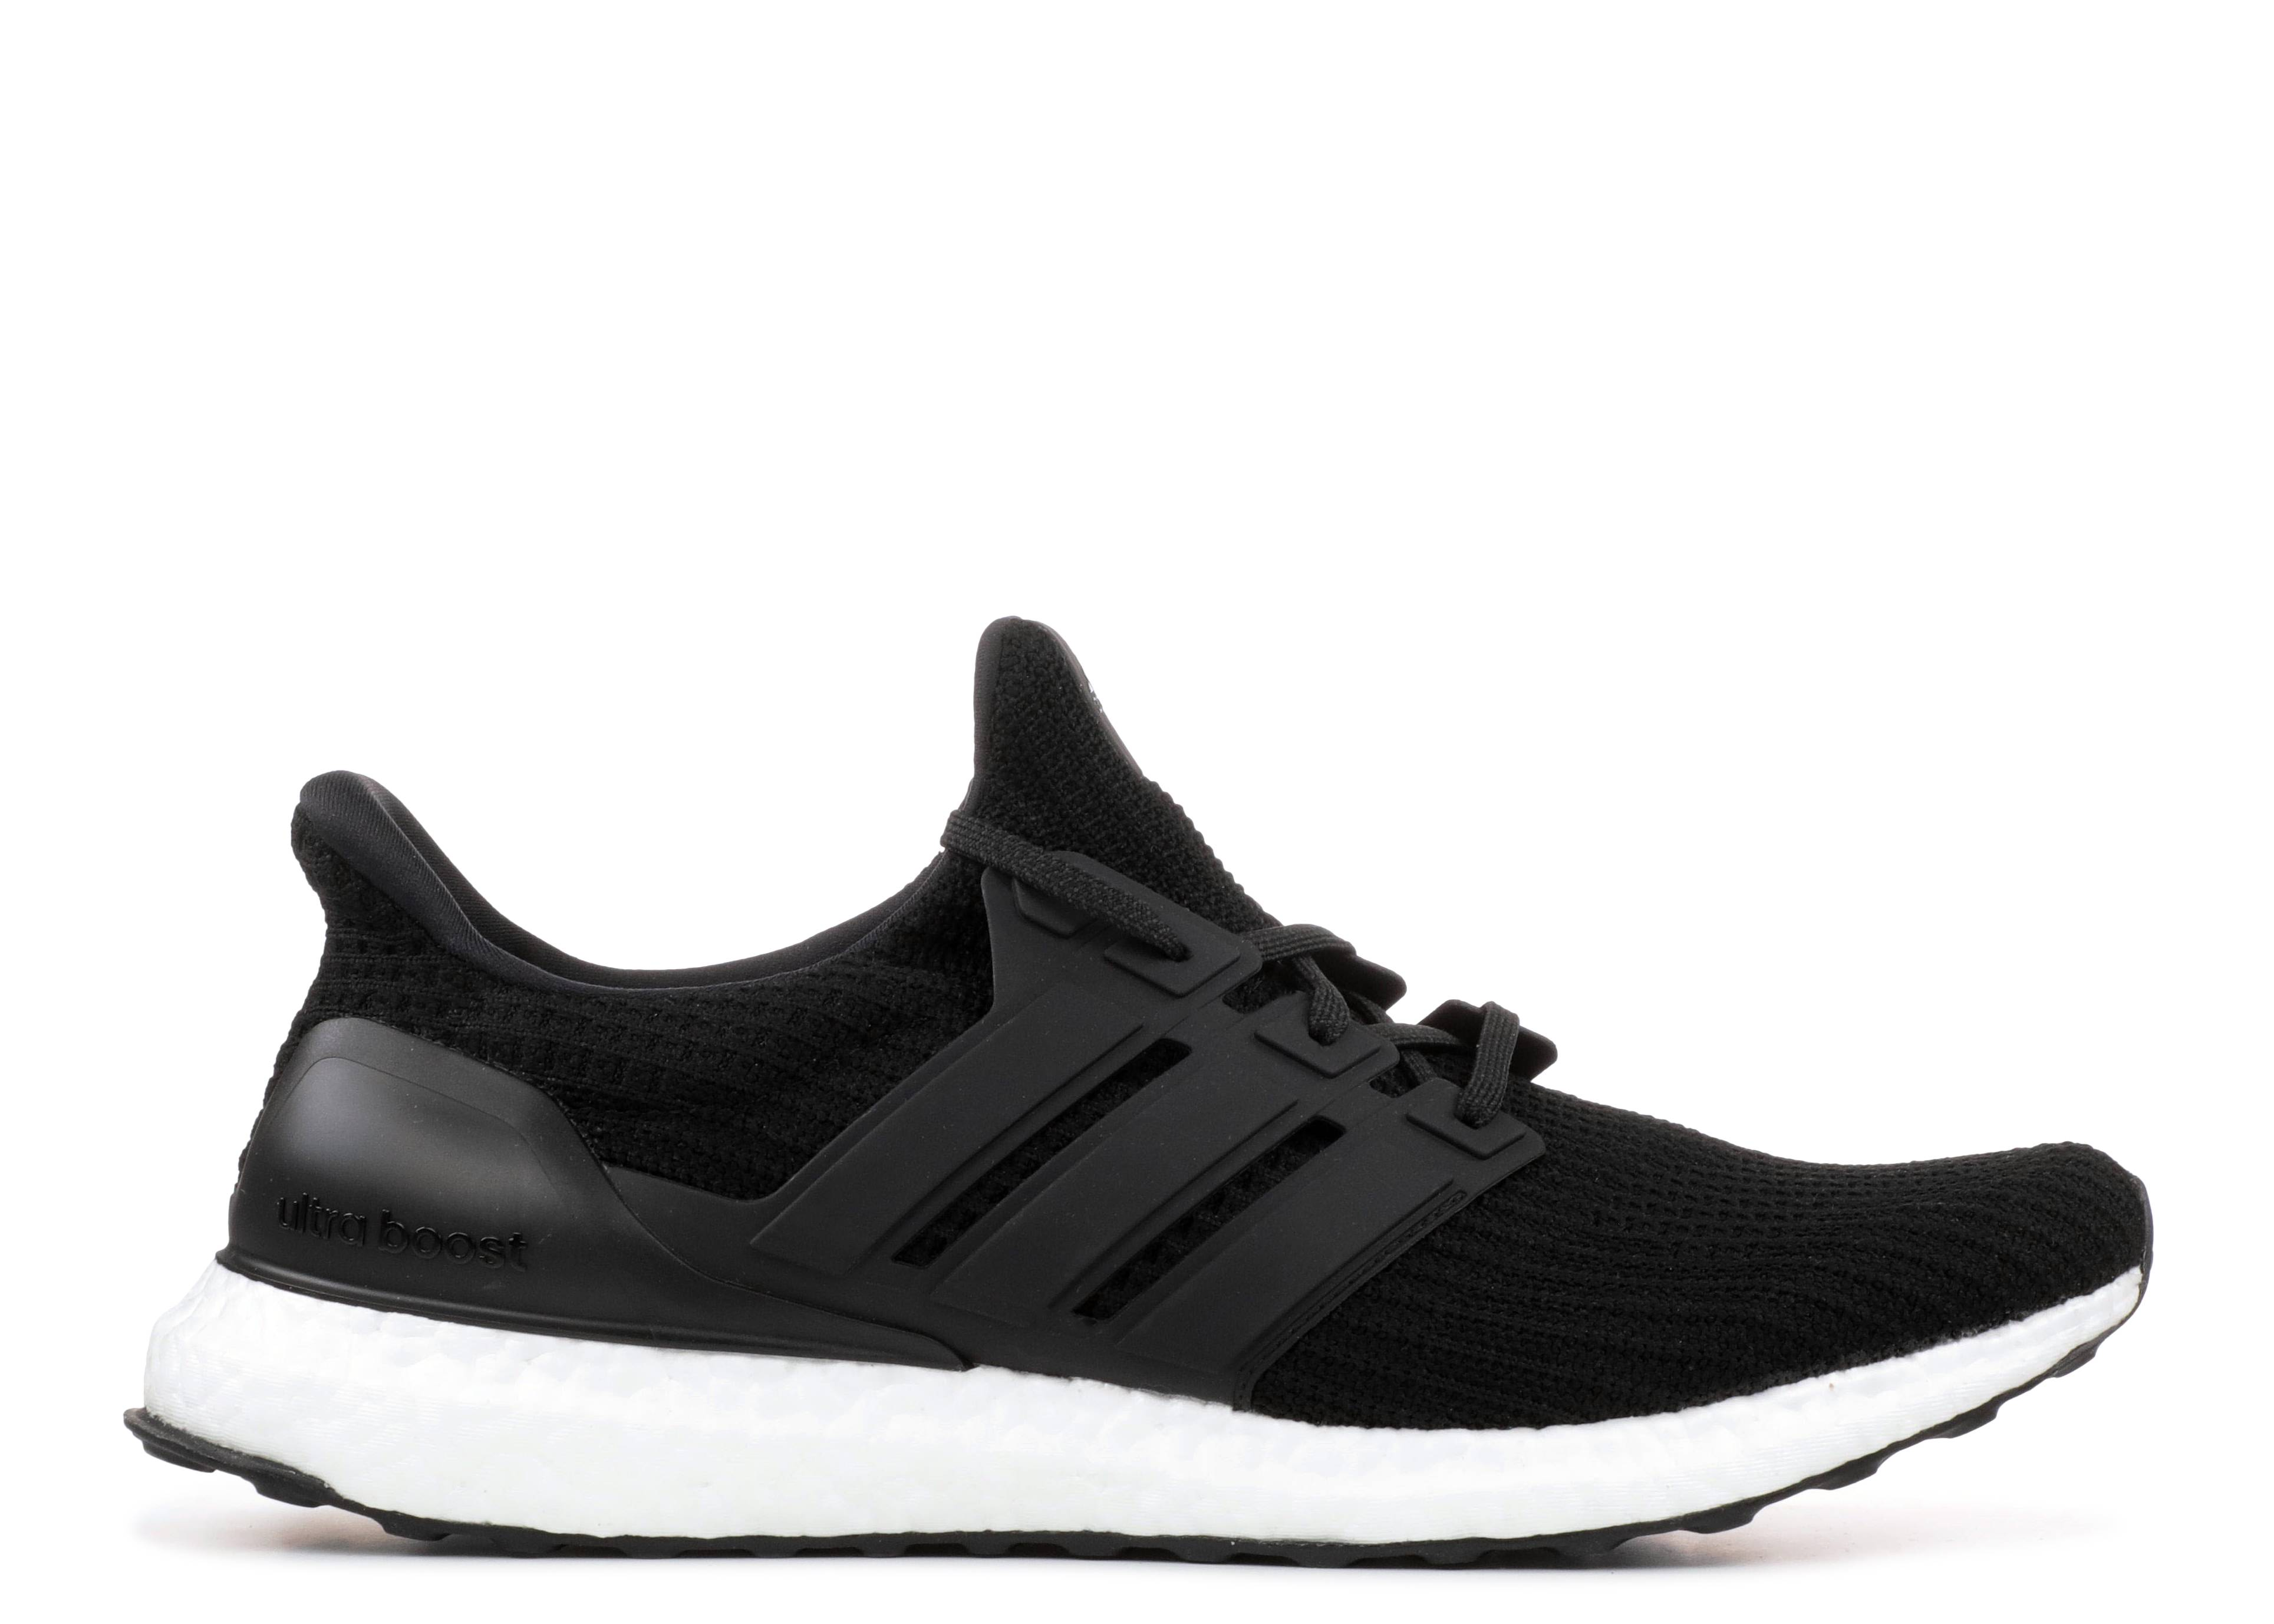 bcffc6714cf clearance adidas ultra boost core black background 7e59f c0f14